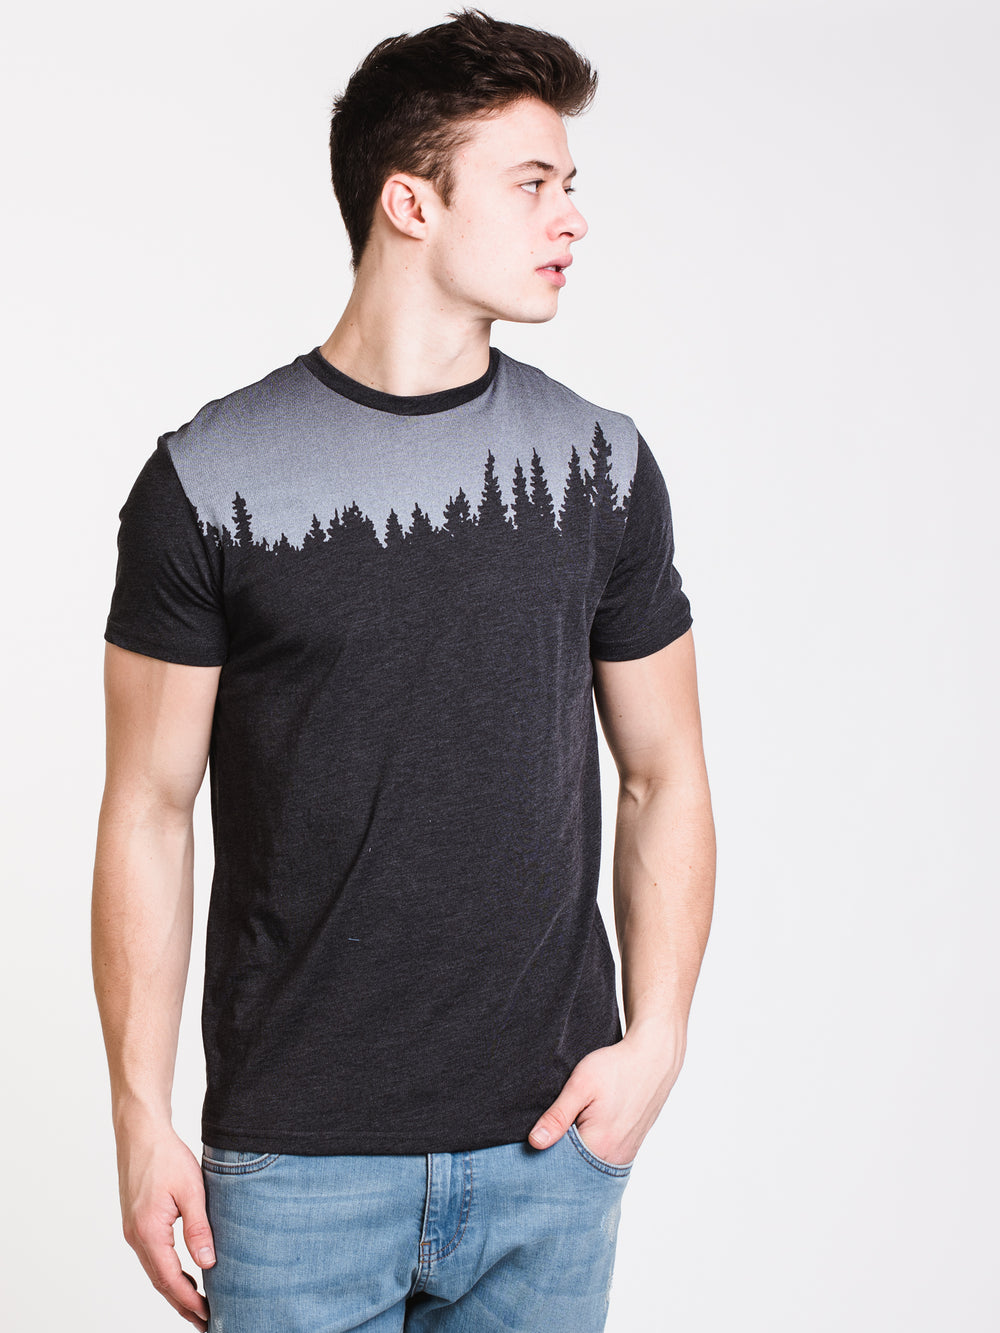 MENS JUNIPER SHORT SLEEVE T-SHIRT - BLACK